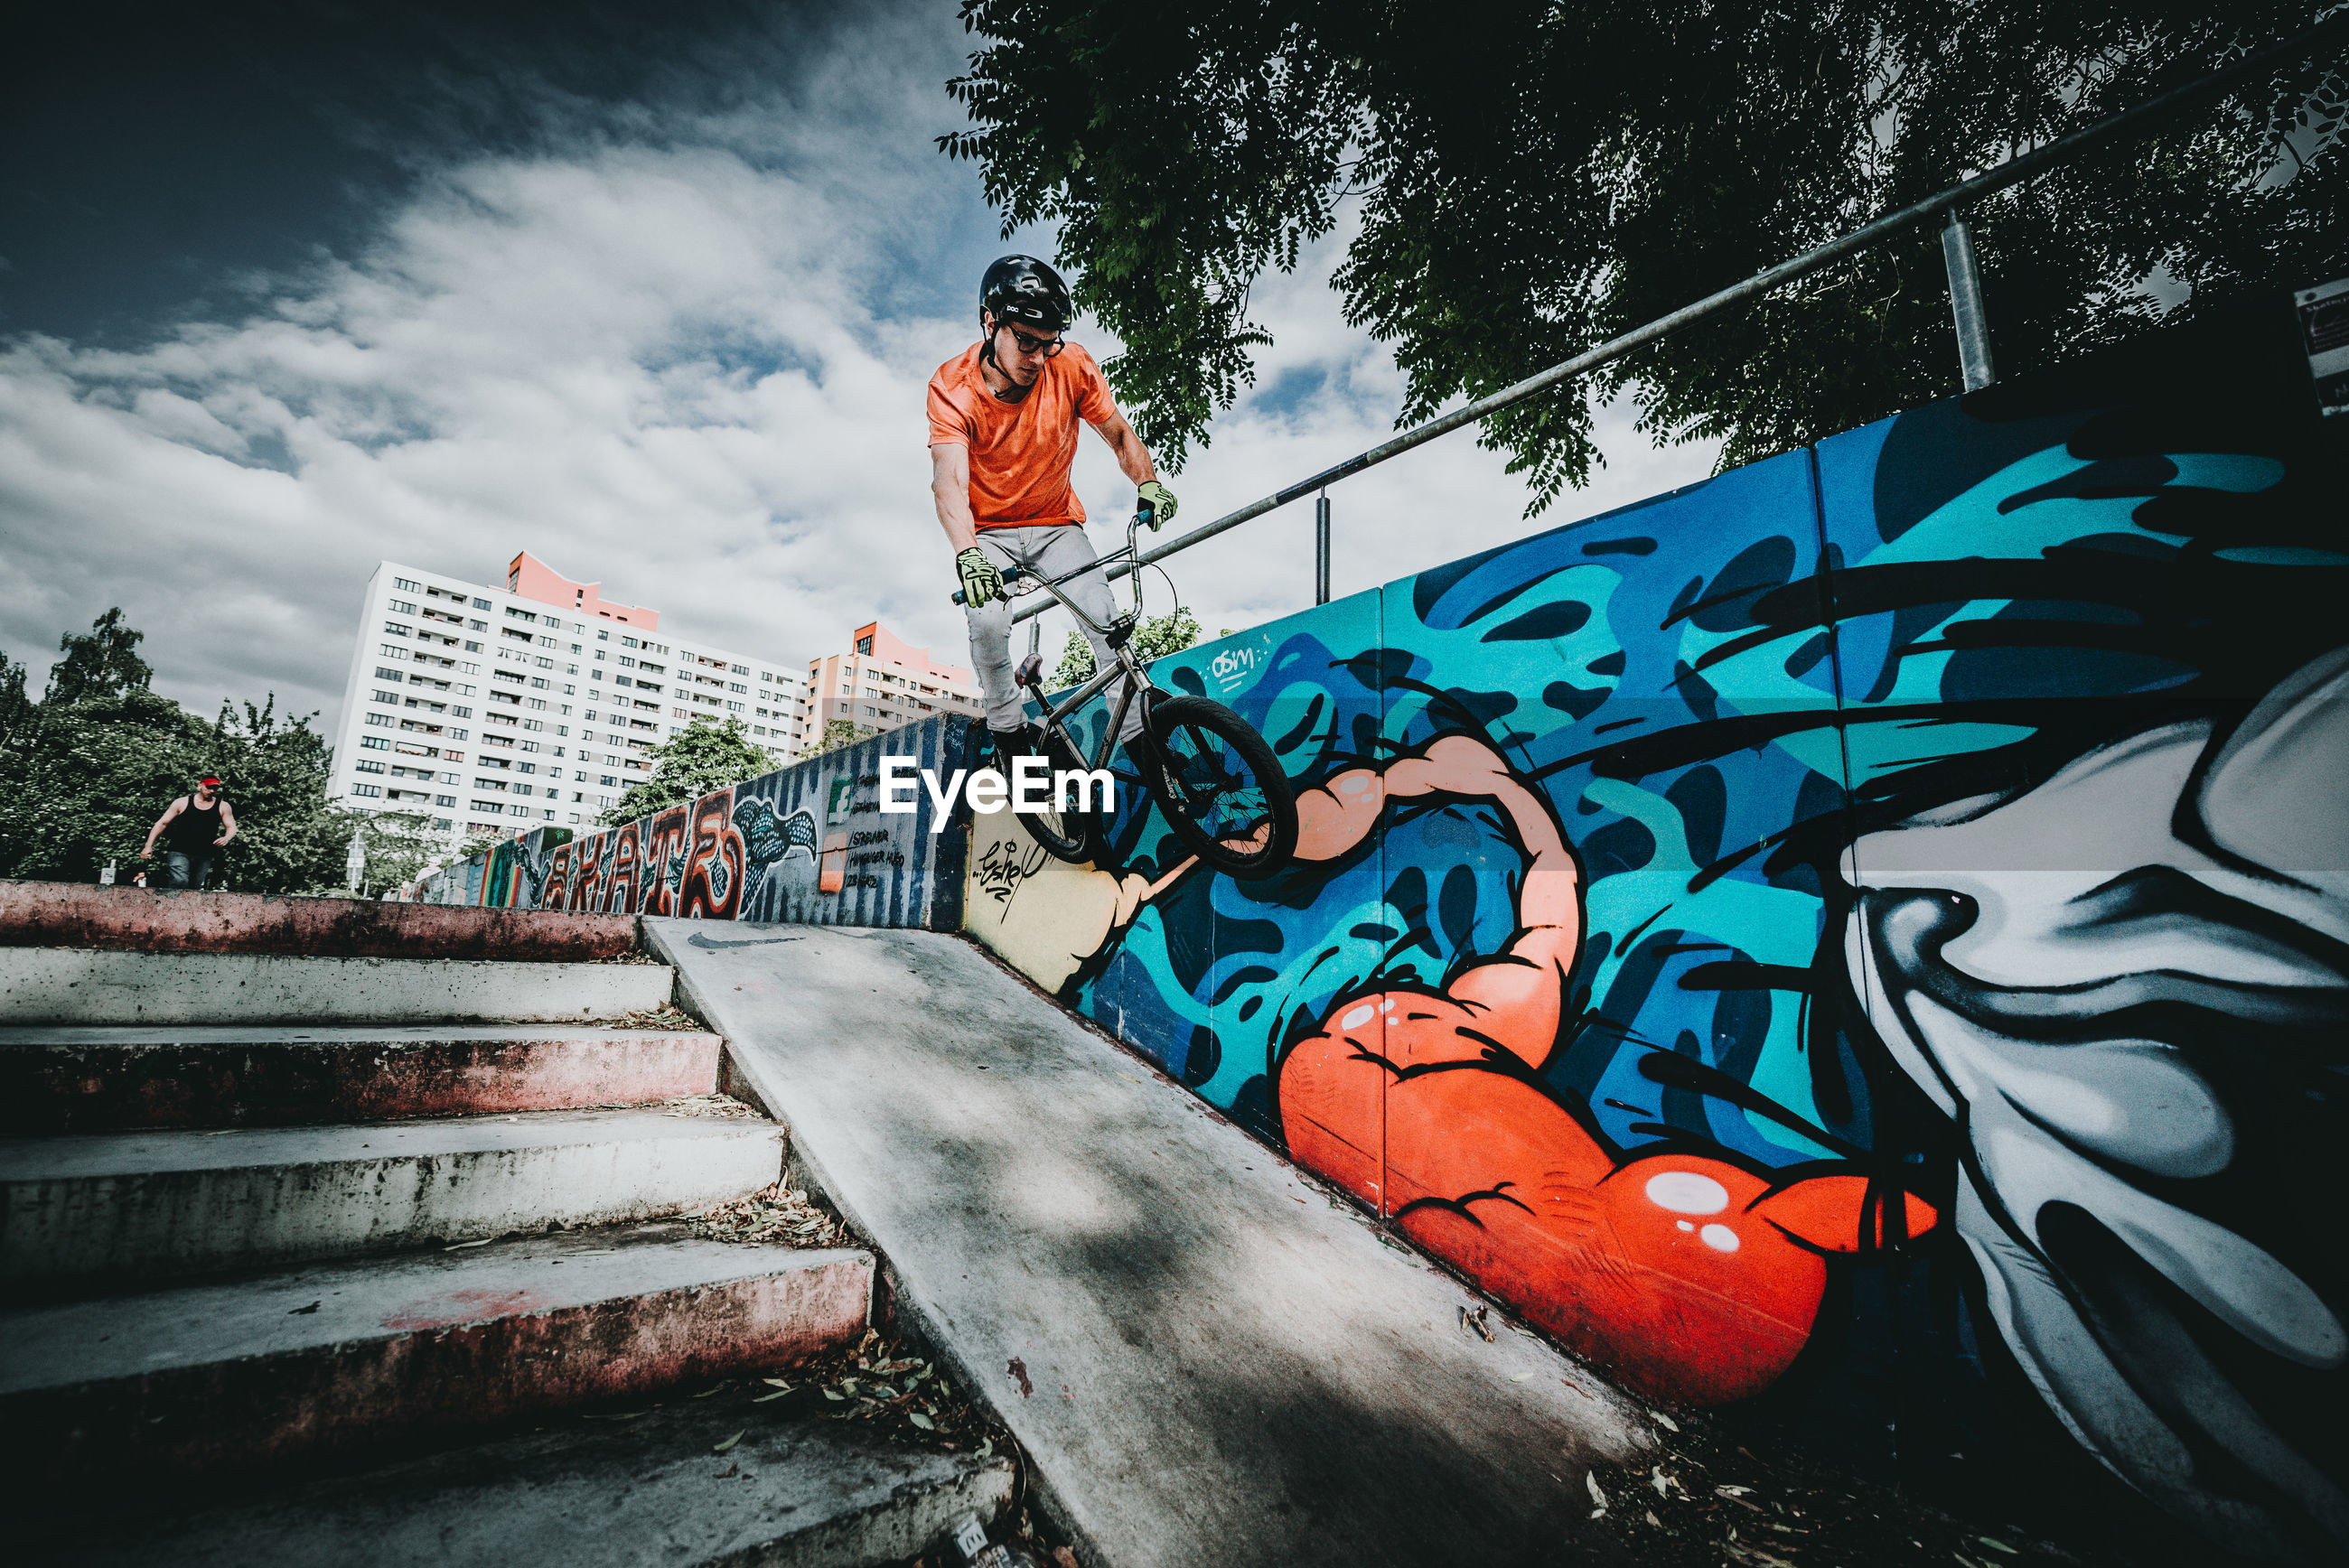 Man doing stunts with bicycle over steps by graffiti on wall